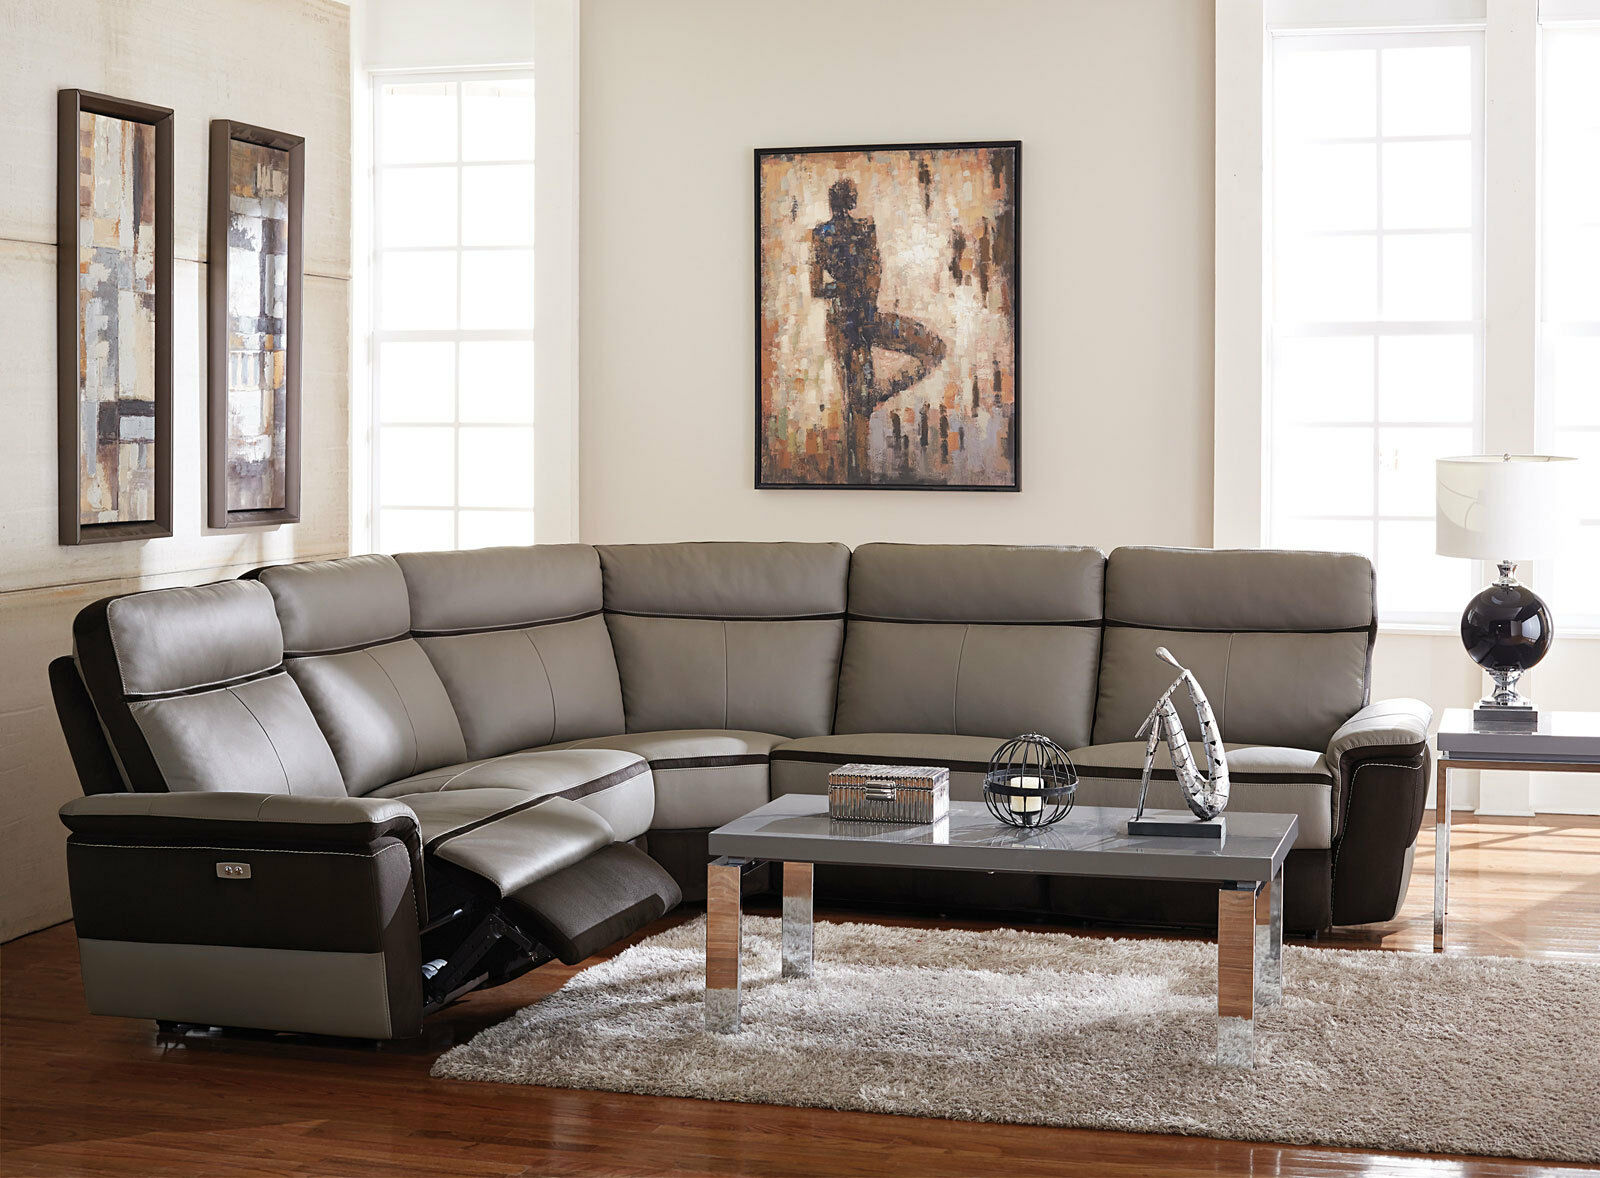 Living Room Modular Sectional Gray Leather Power Recliner 5 Pieces Sofa Set If62